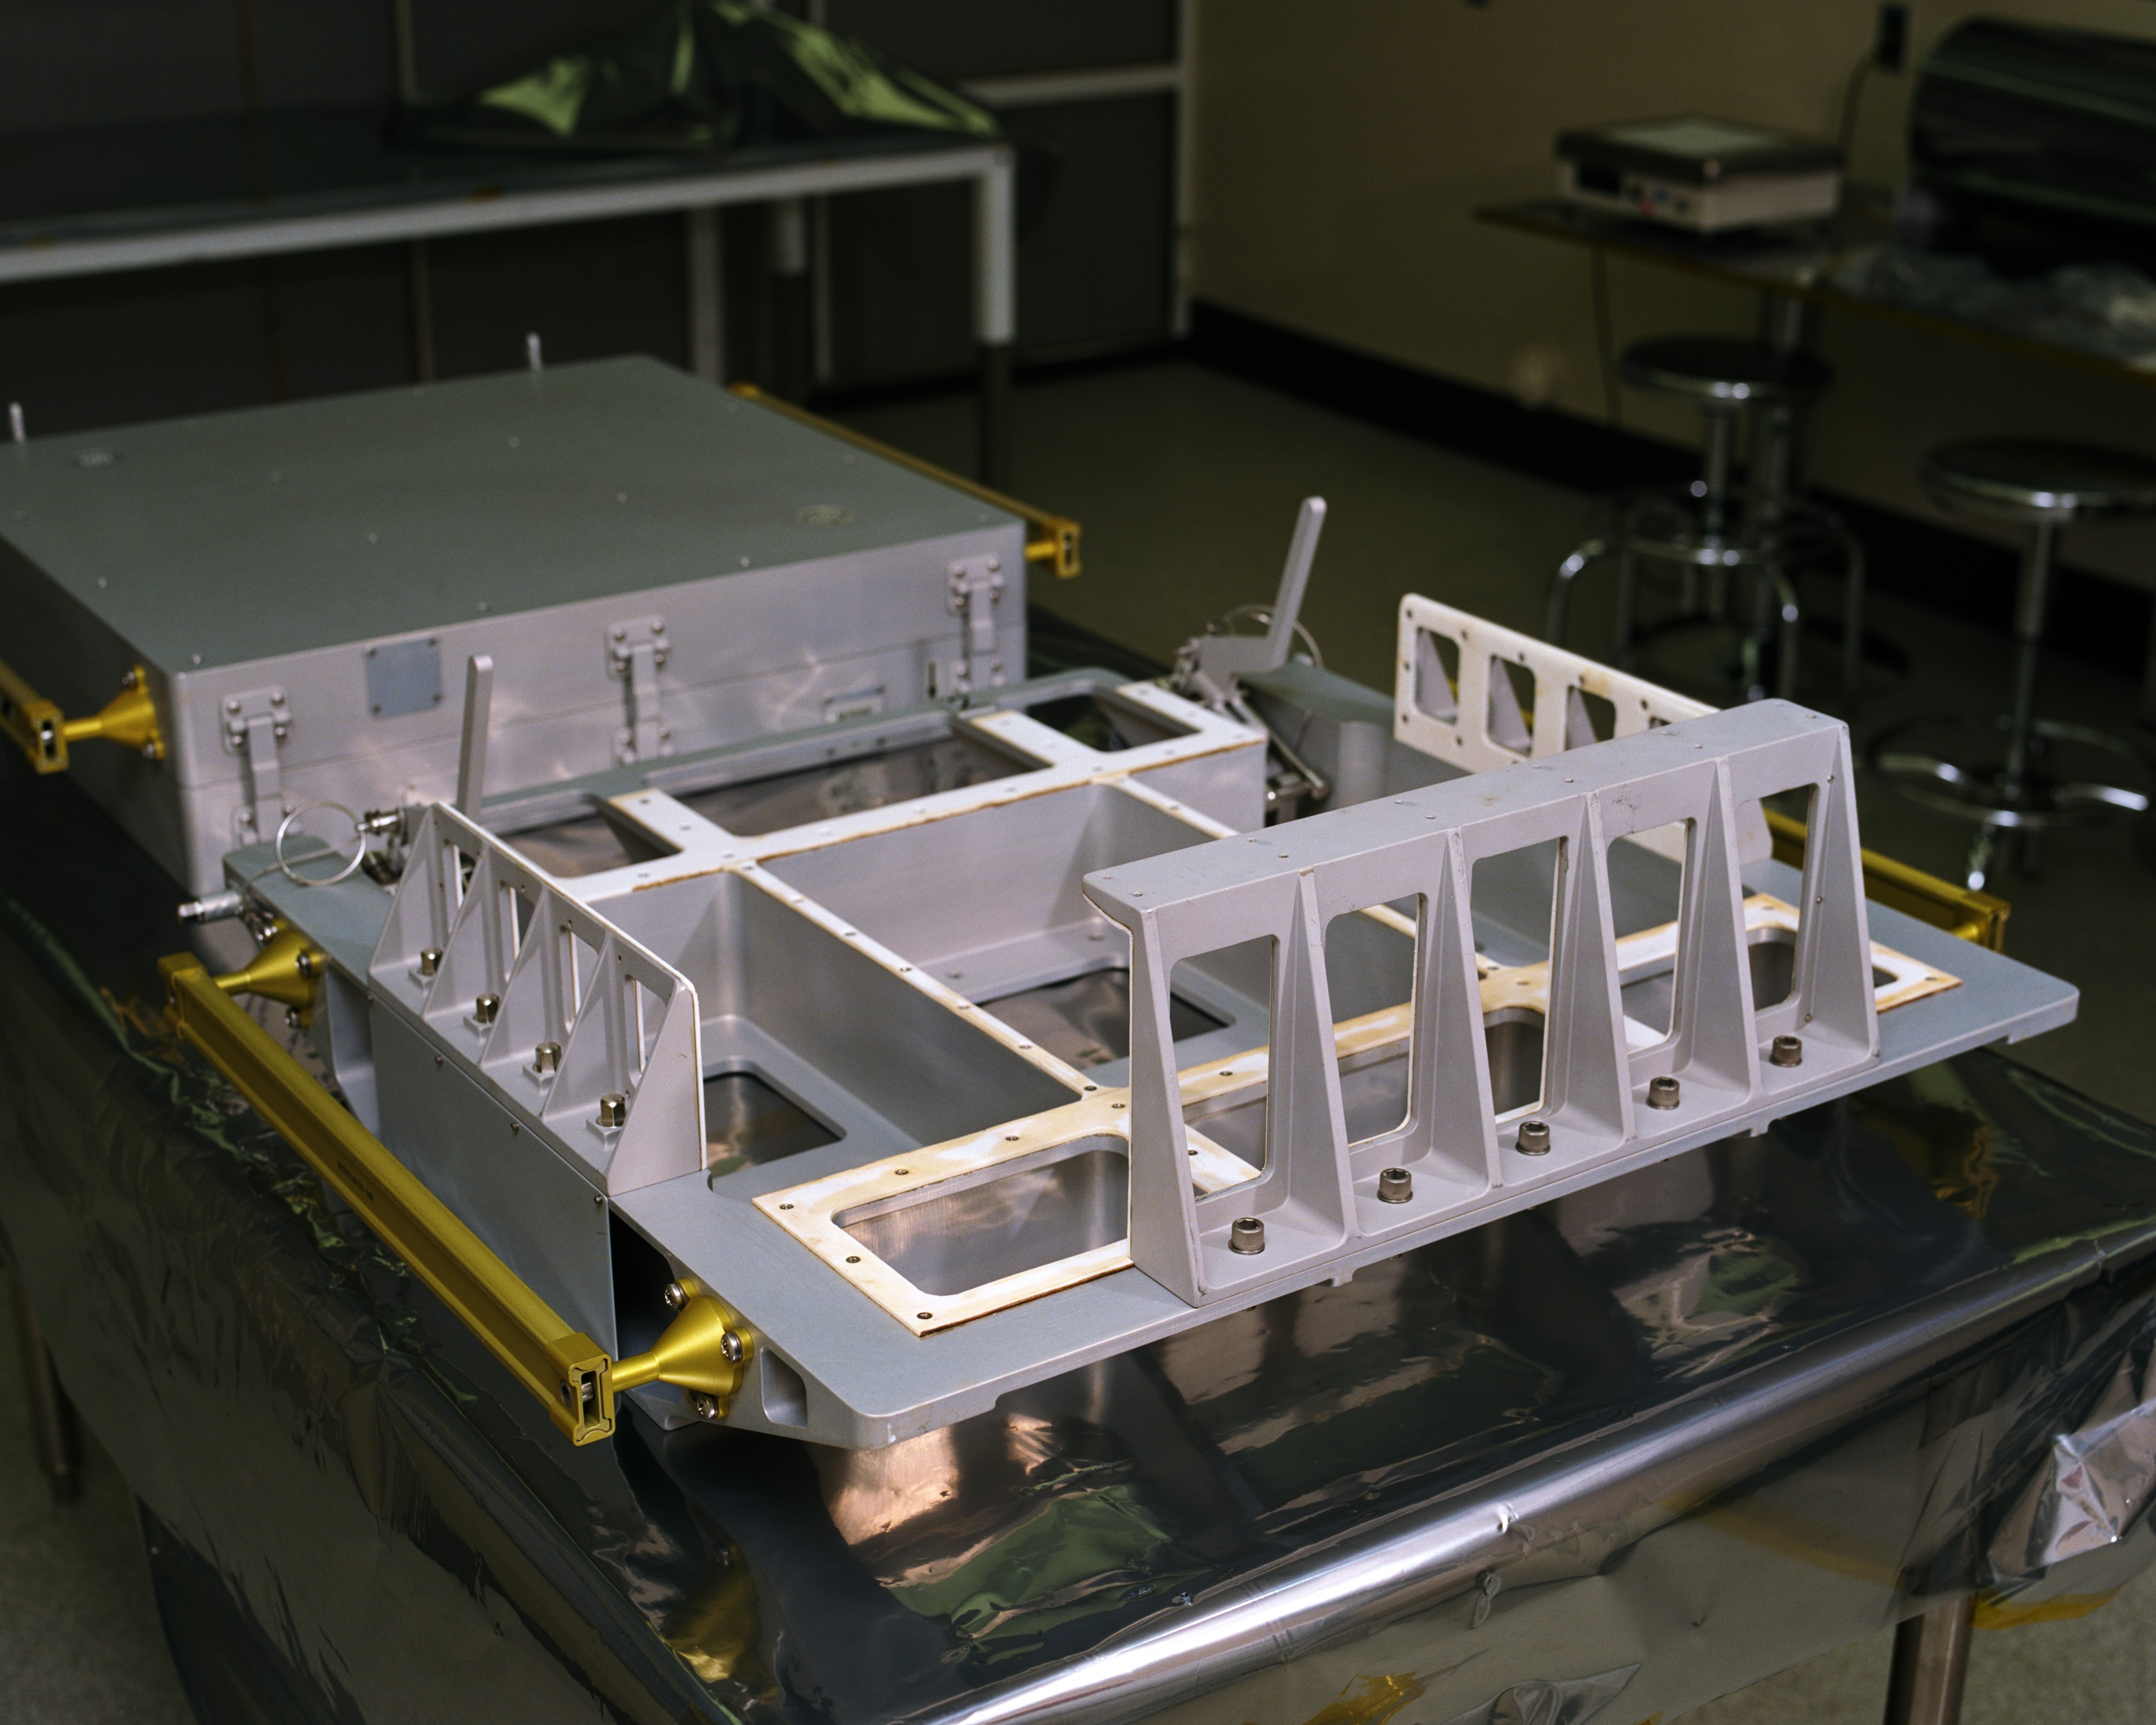 Materials International Space Station Experiment (MISSE)